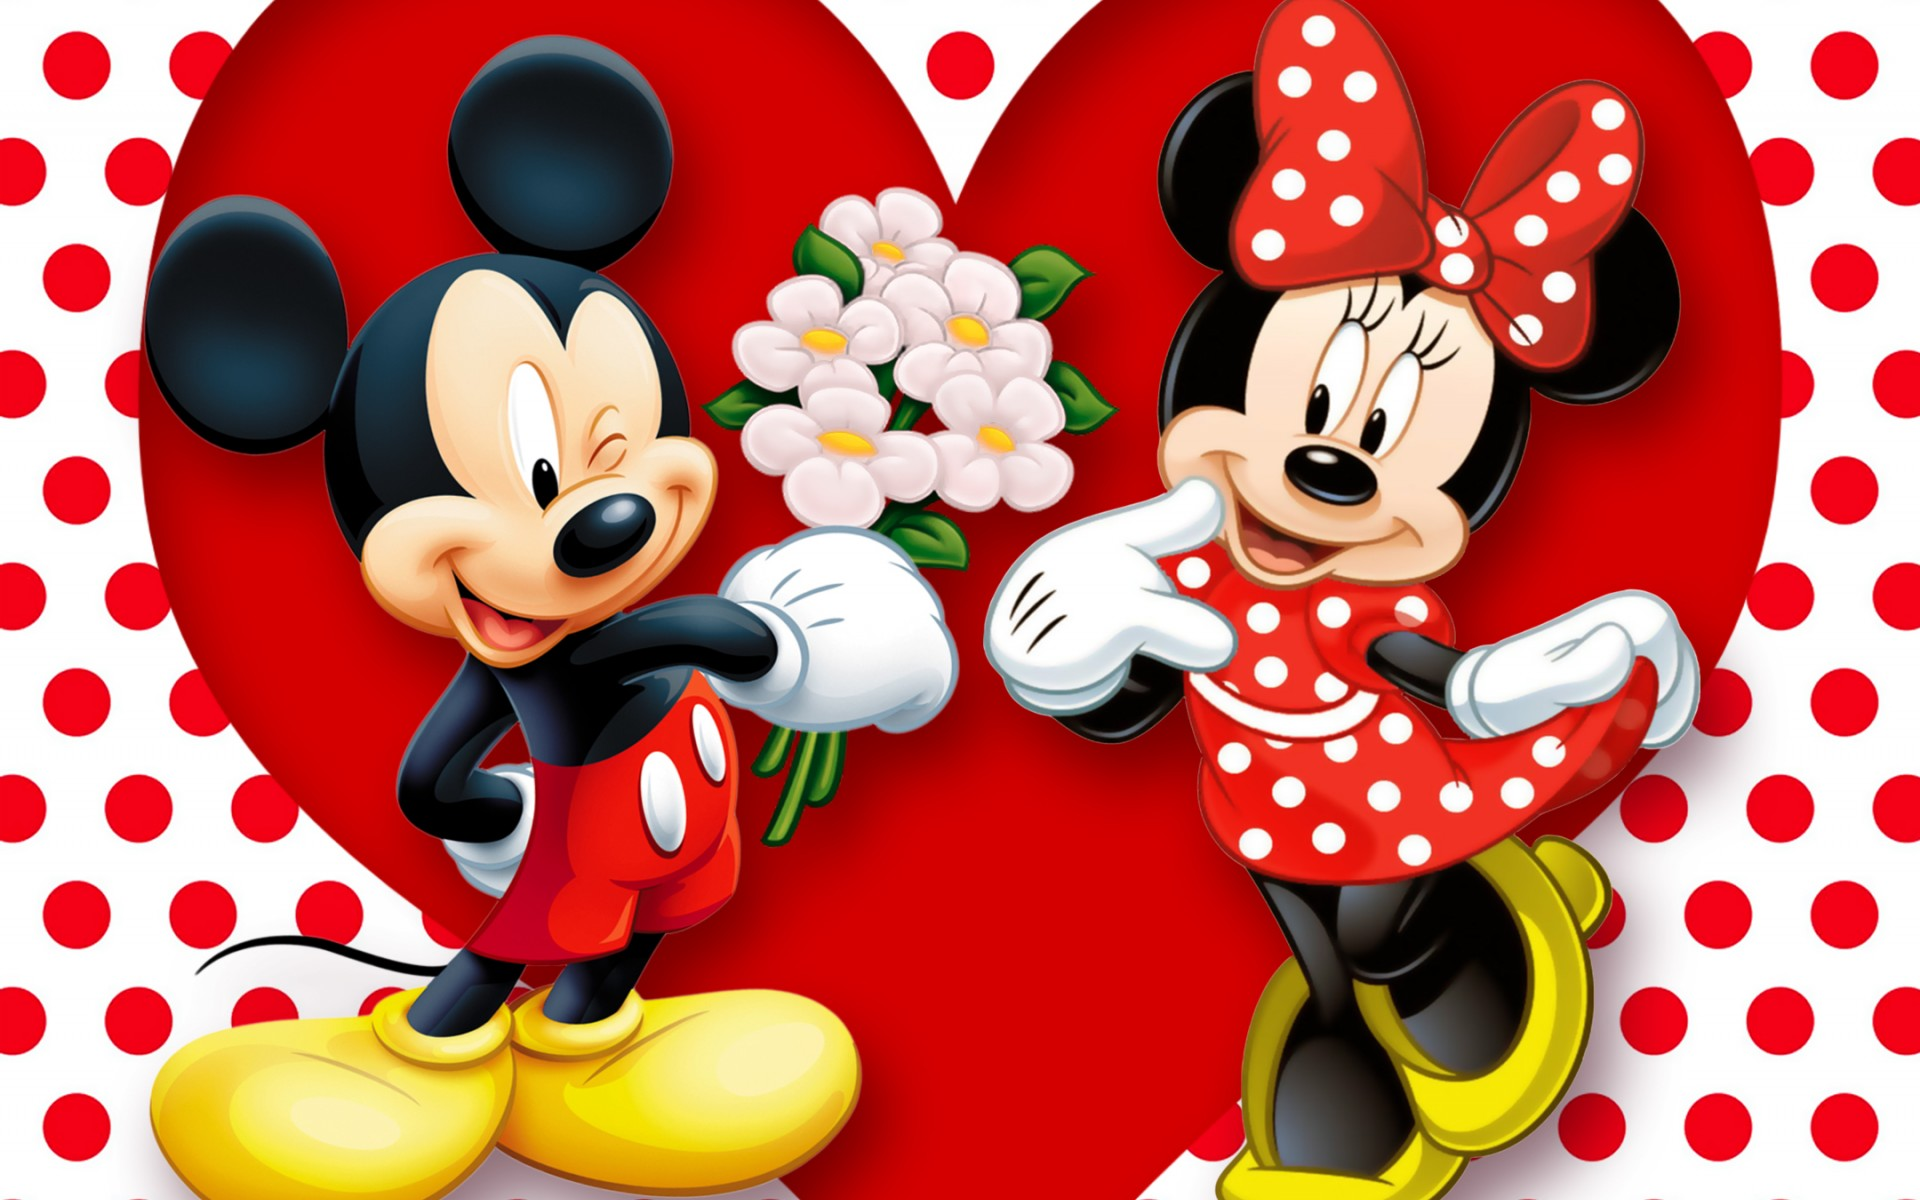 wallpaper mickey mouse, minnie mouse desktop picture & hd photo